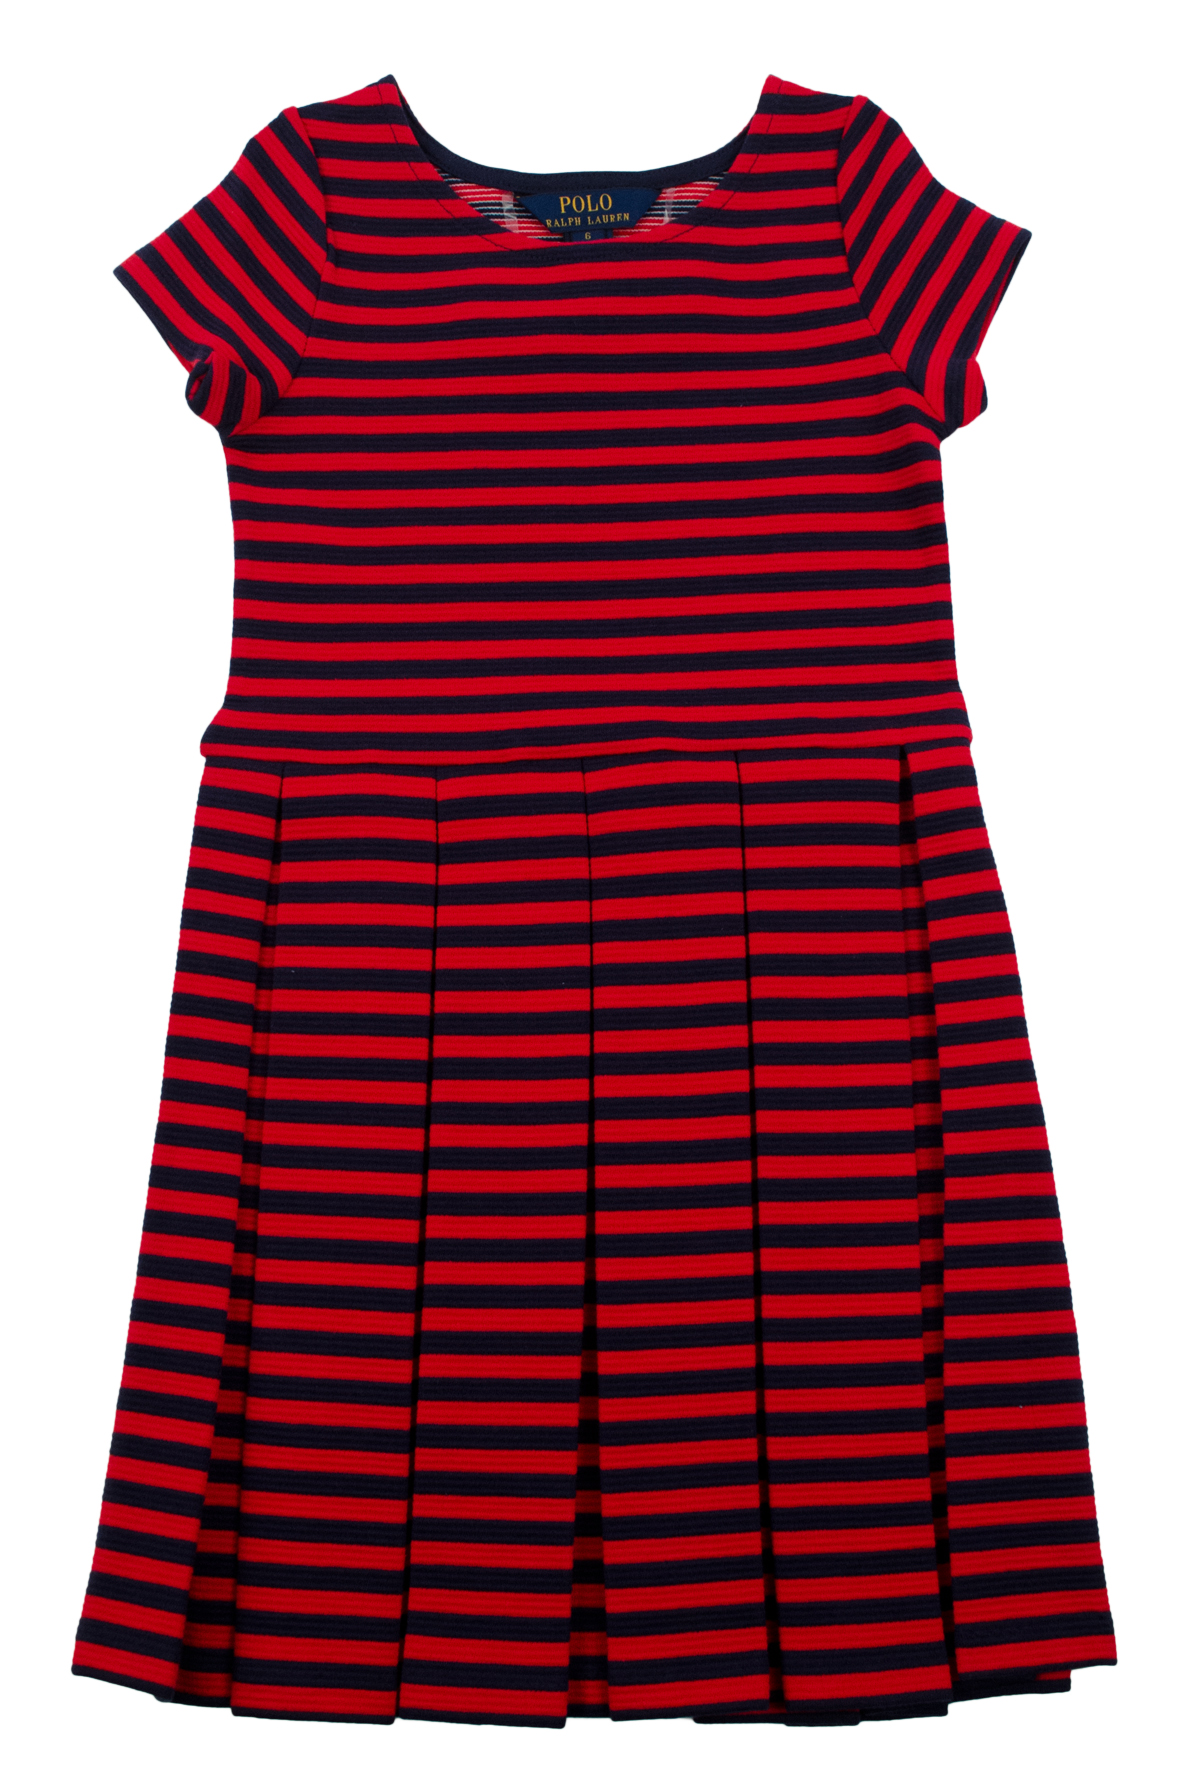 Polo ralph lauren little girls 39 short sleeve pleated for Polo ralph lauren striped knit dress shirt